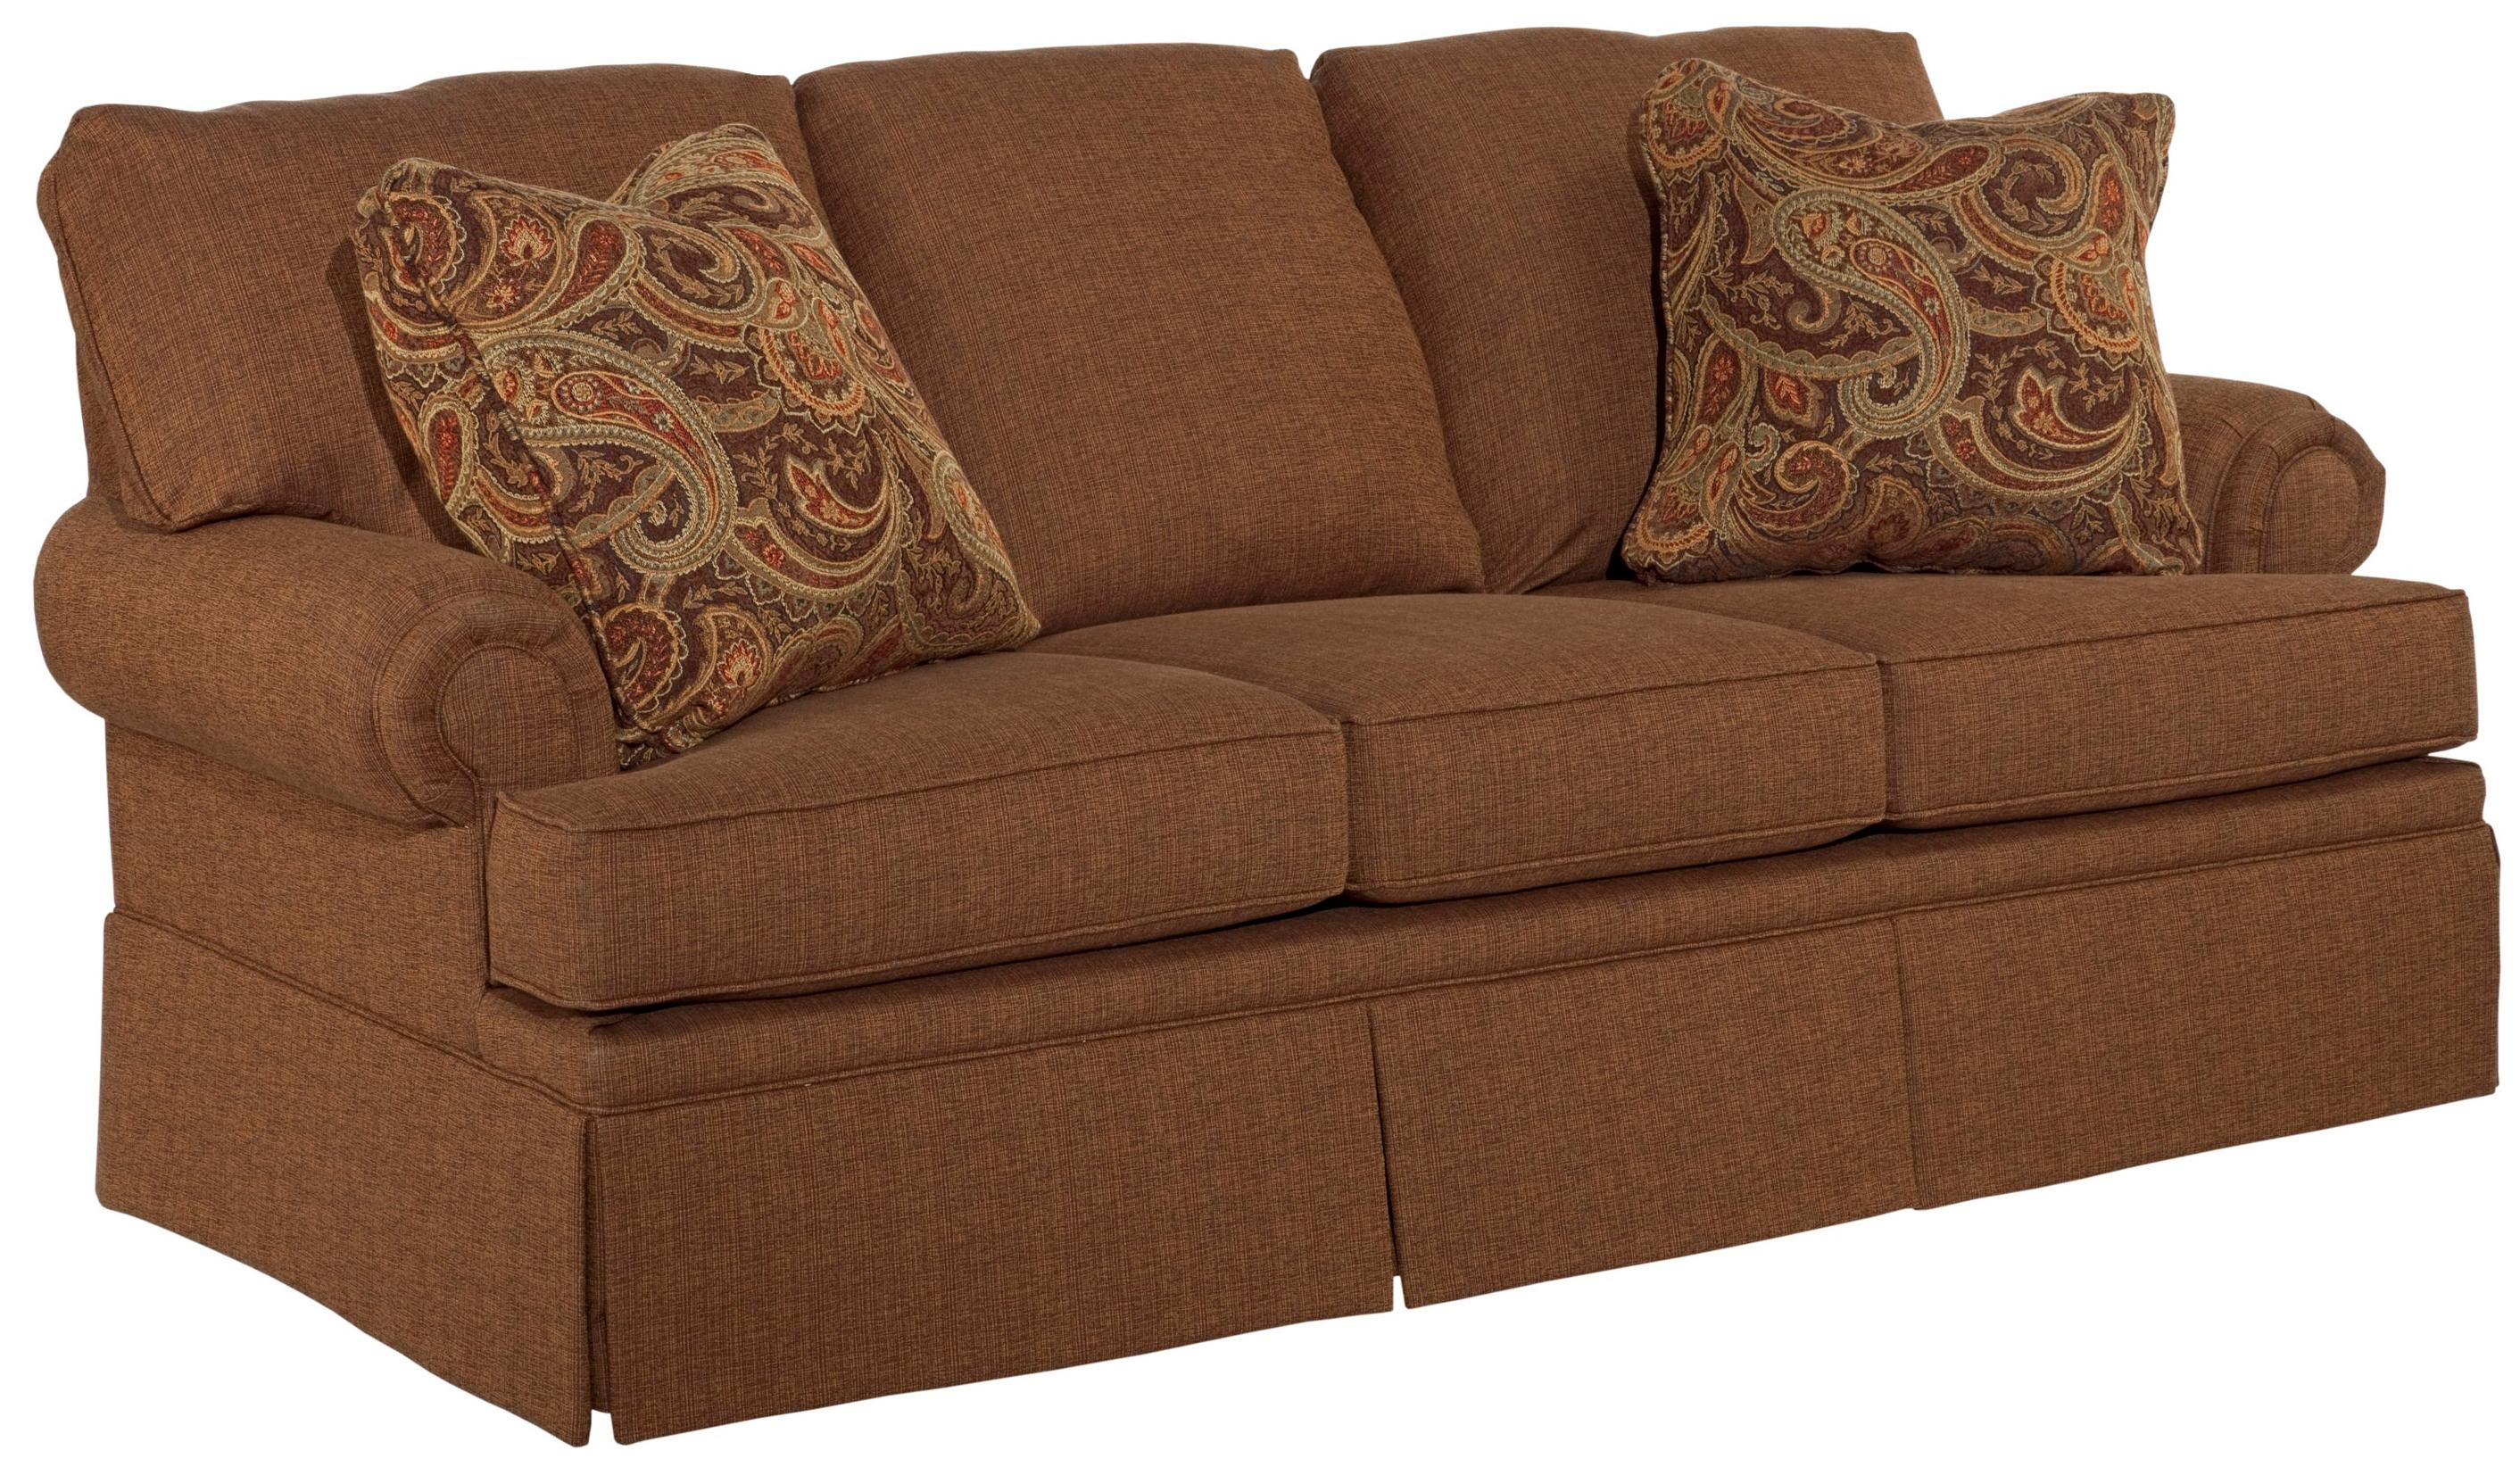 Broyhill Furniture Jenna Full Goodnight Sleeper - Item Number: 4342-6